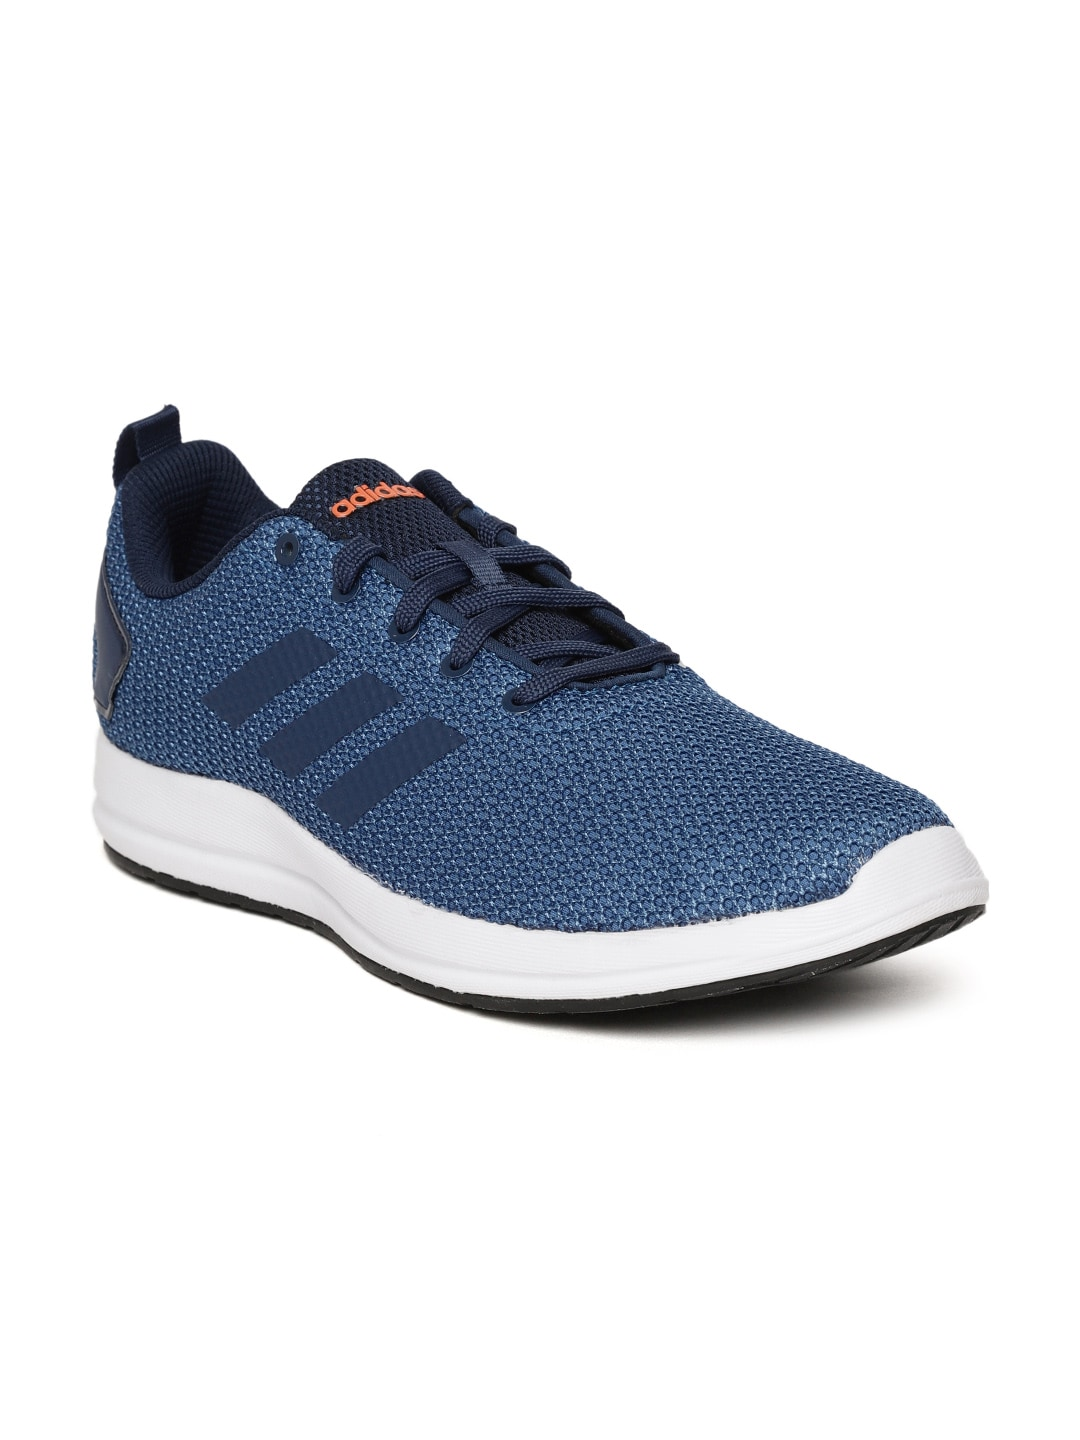 Sports Shoes for Men - Buy Men Sports Shoes Online in India - Myntra 66b743db7ea1